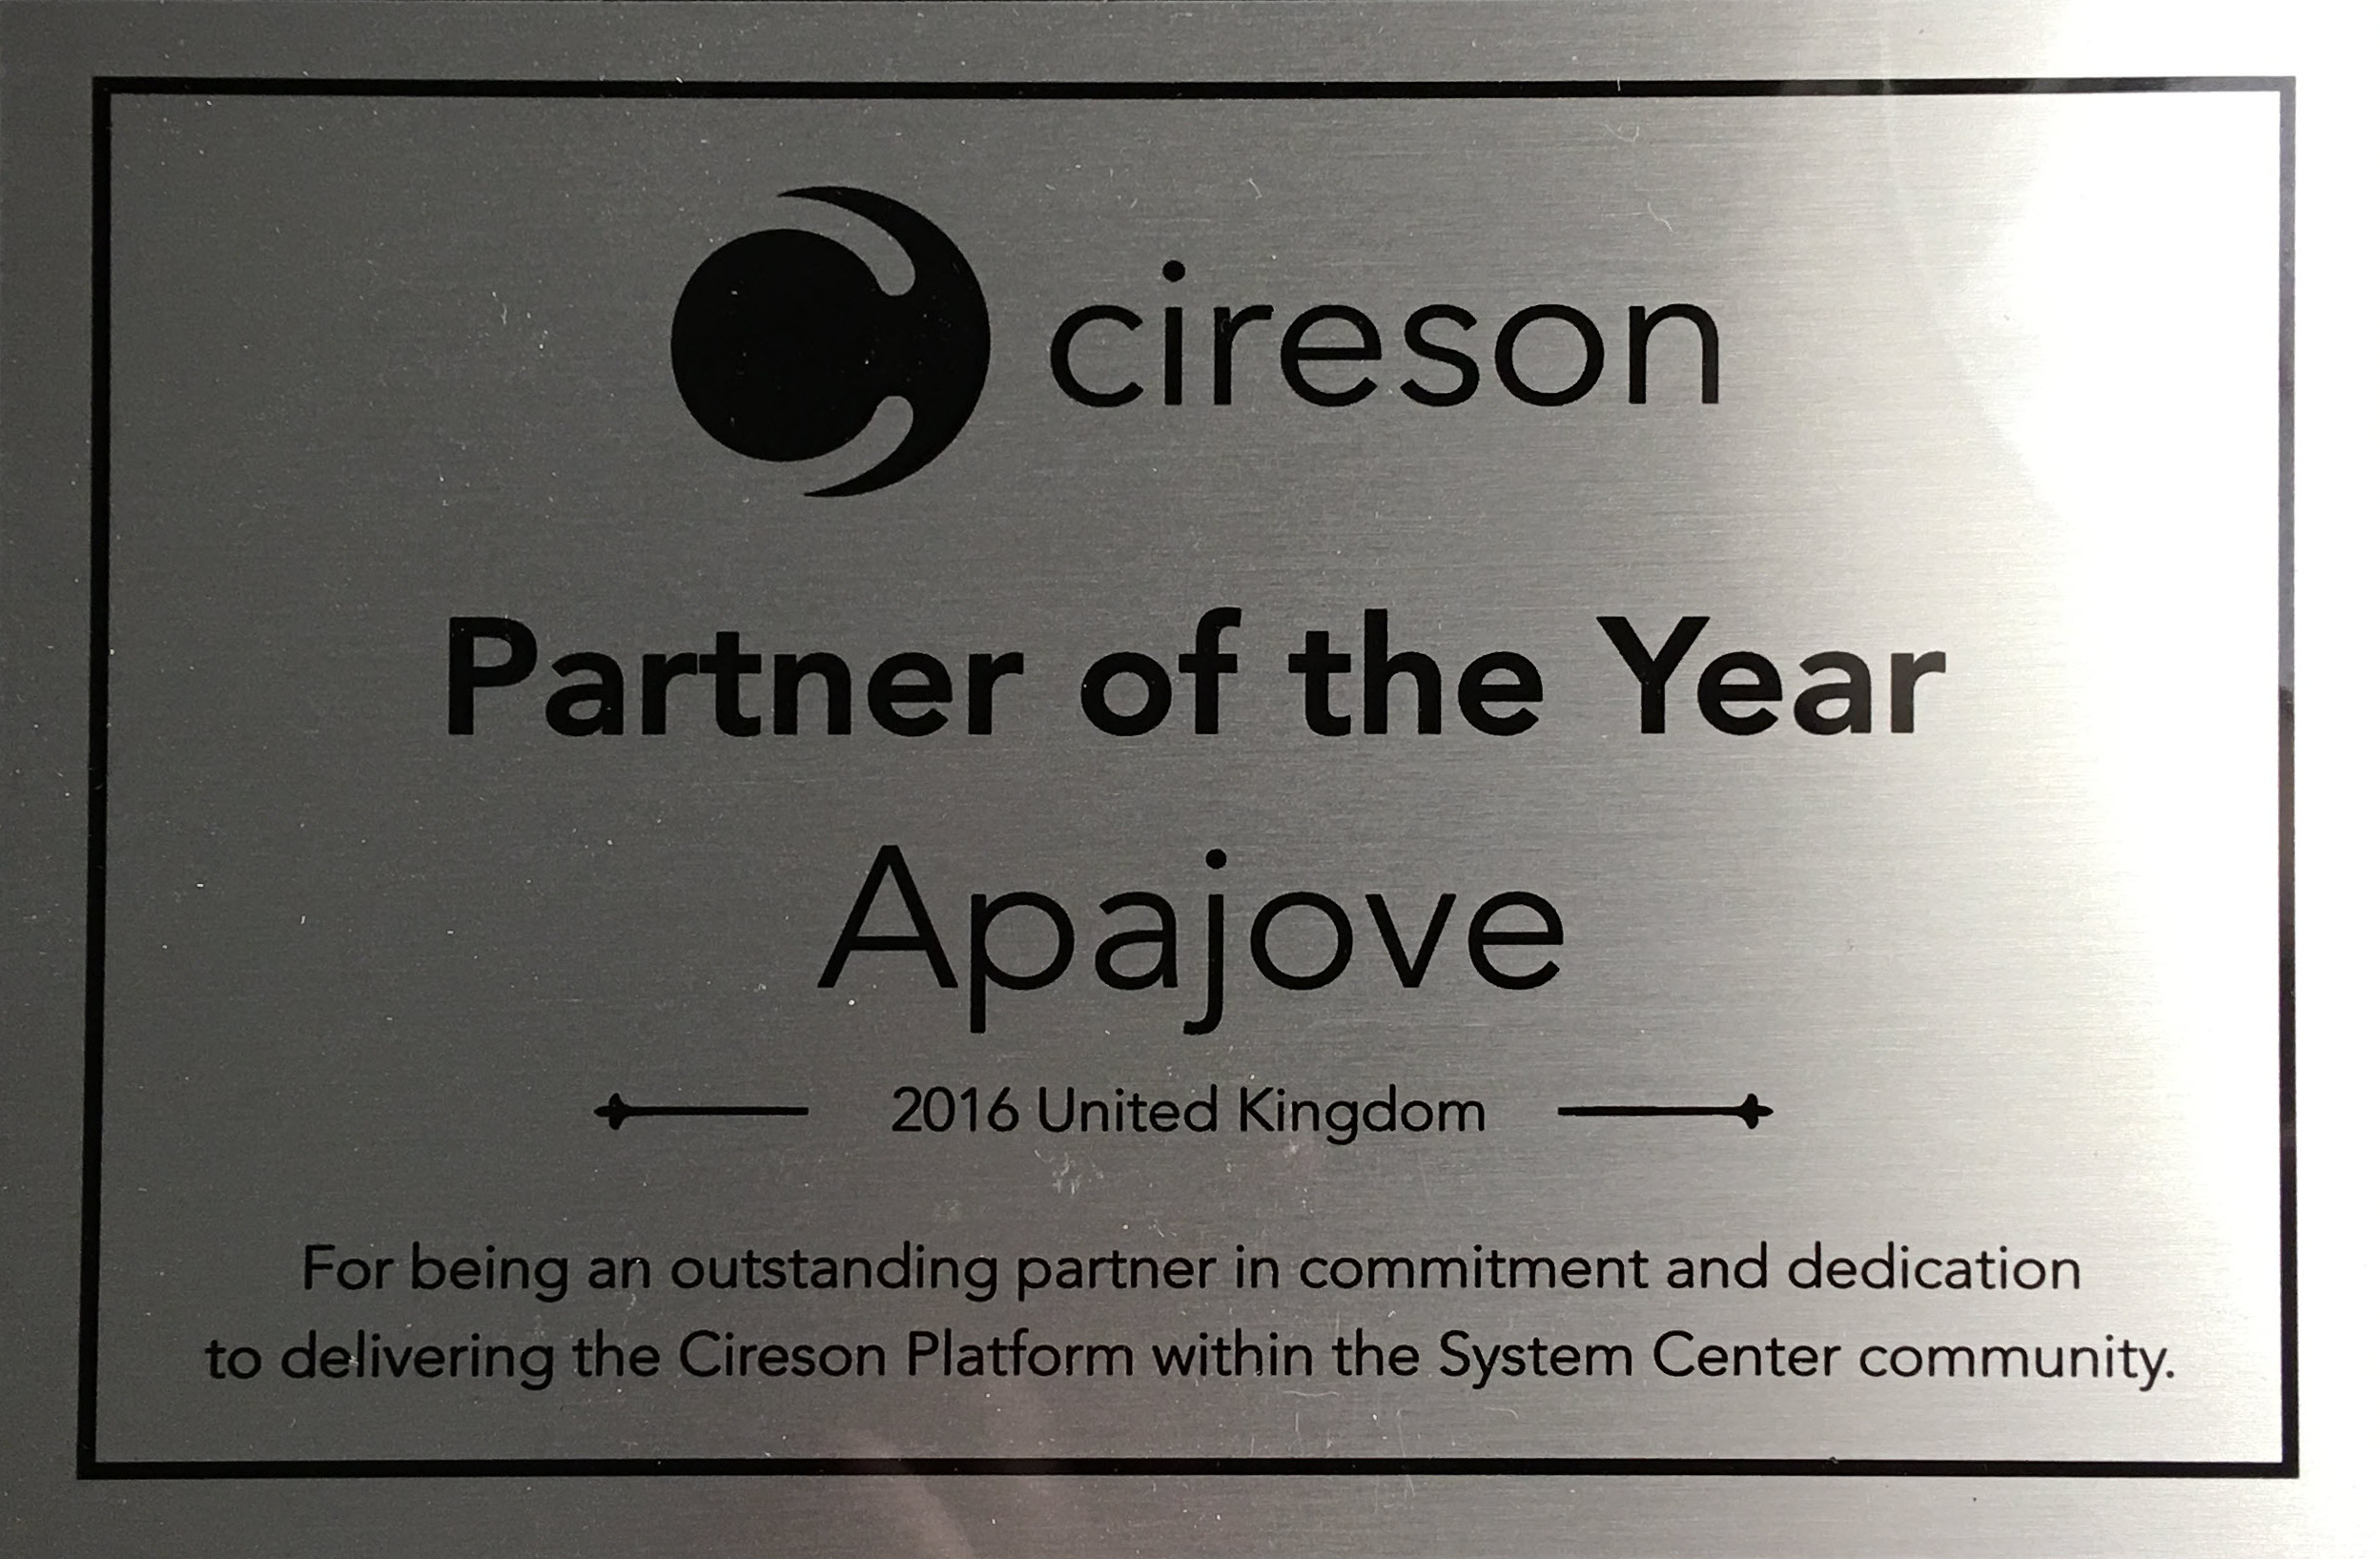 Cireson Partner of the Year